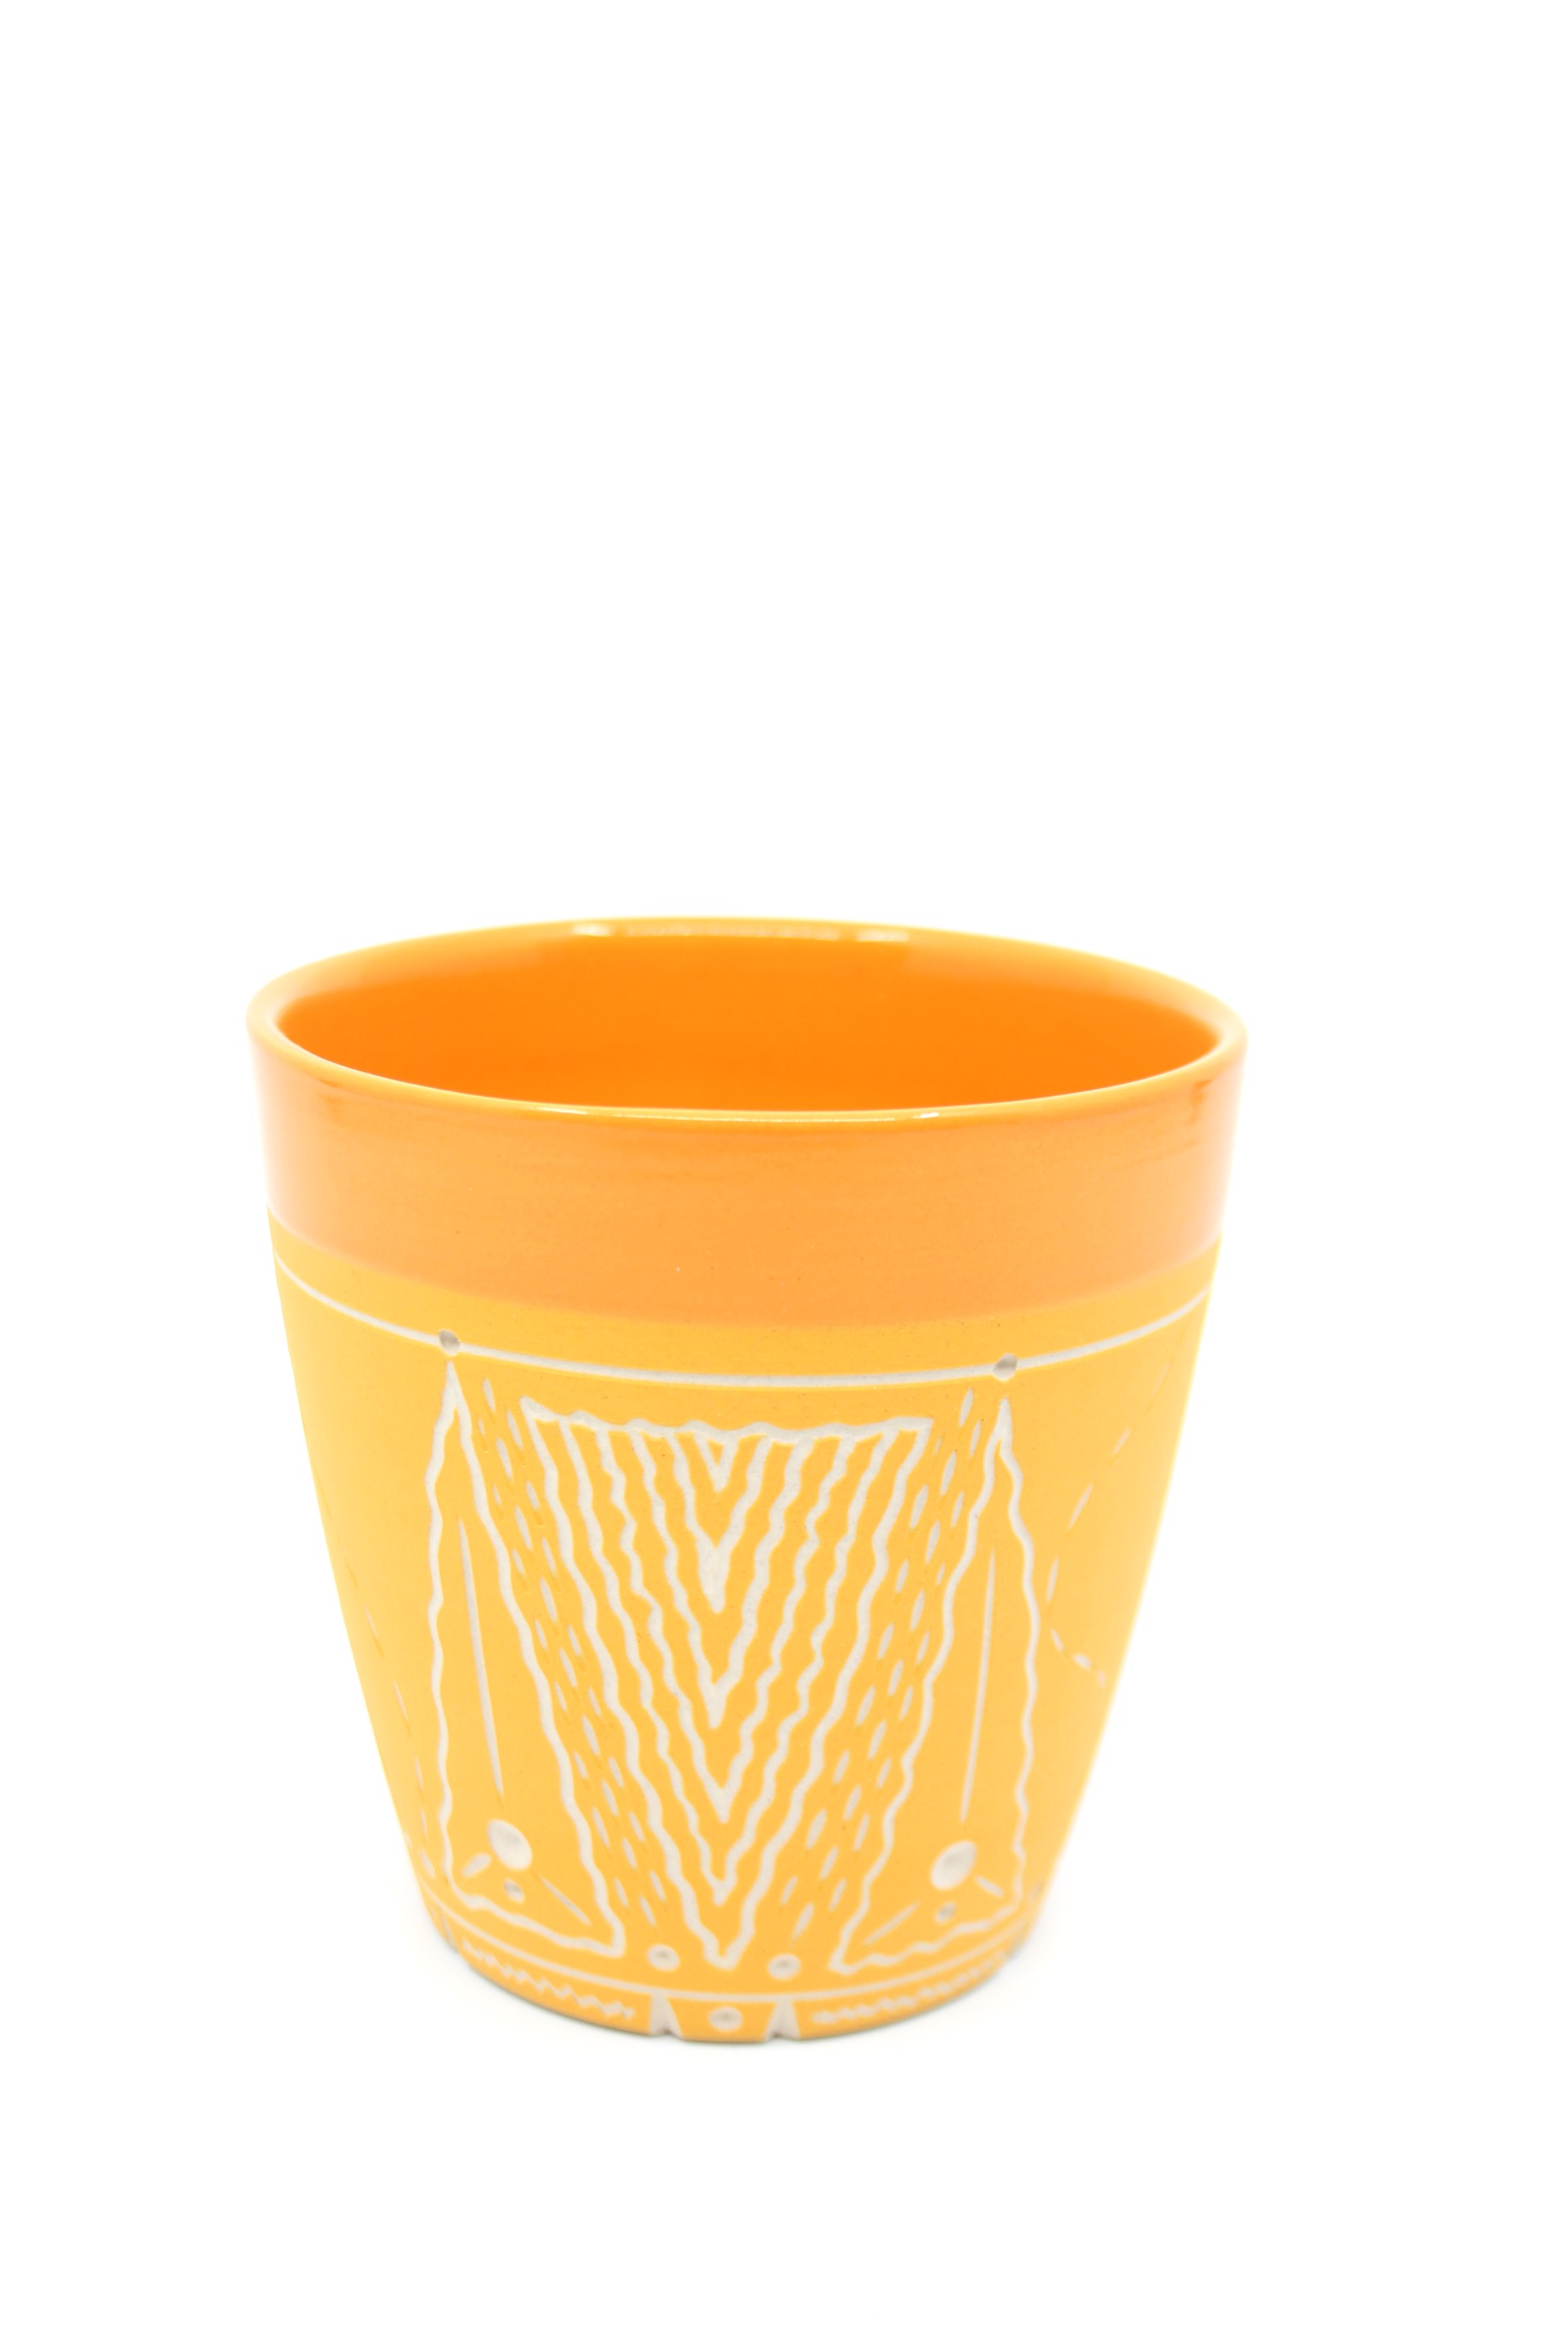 Orange/Tangerine Cup by Chris Casey